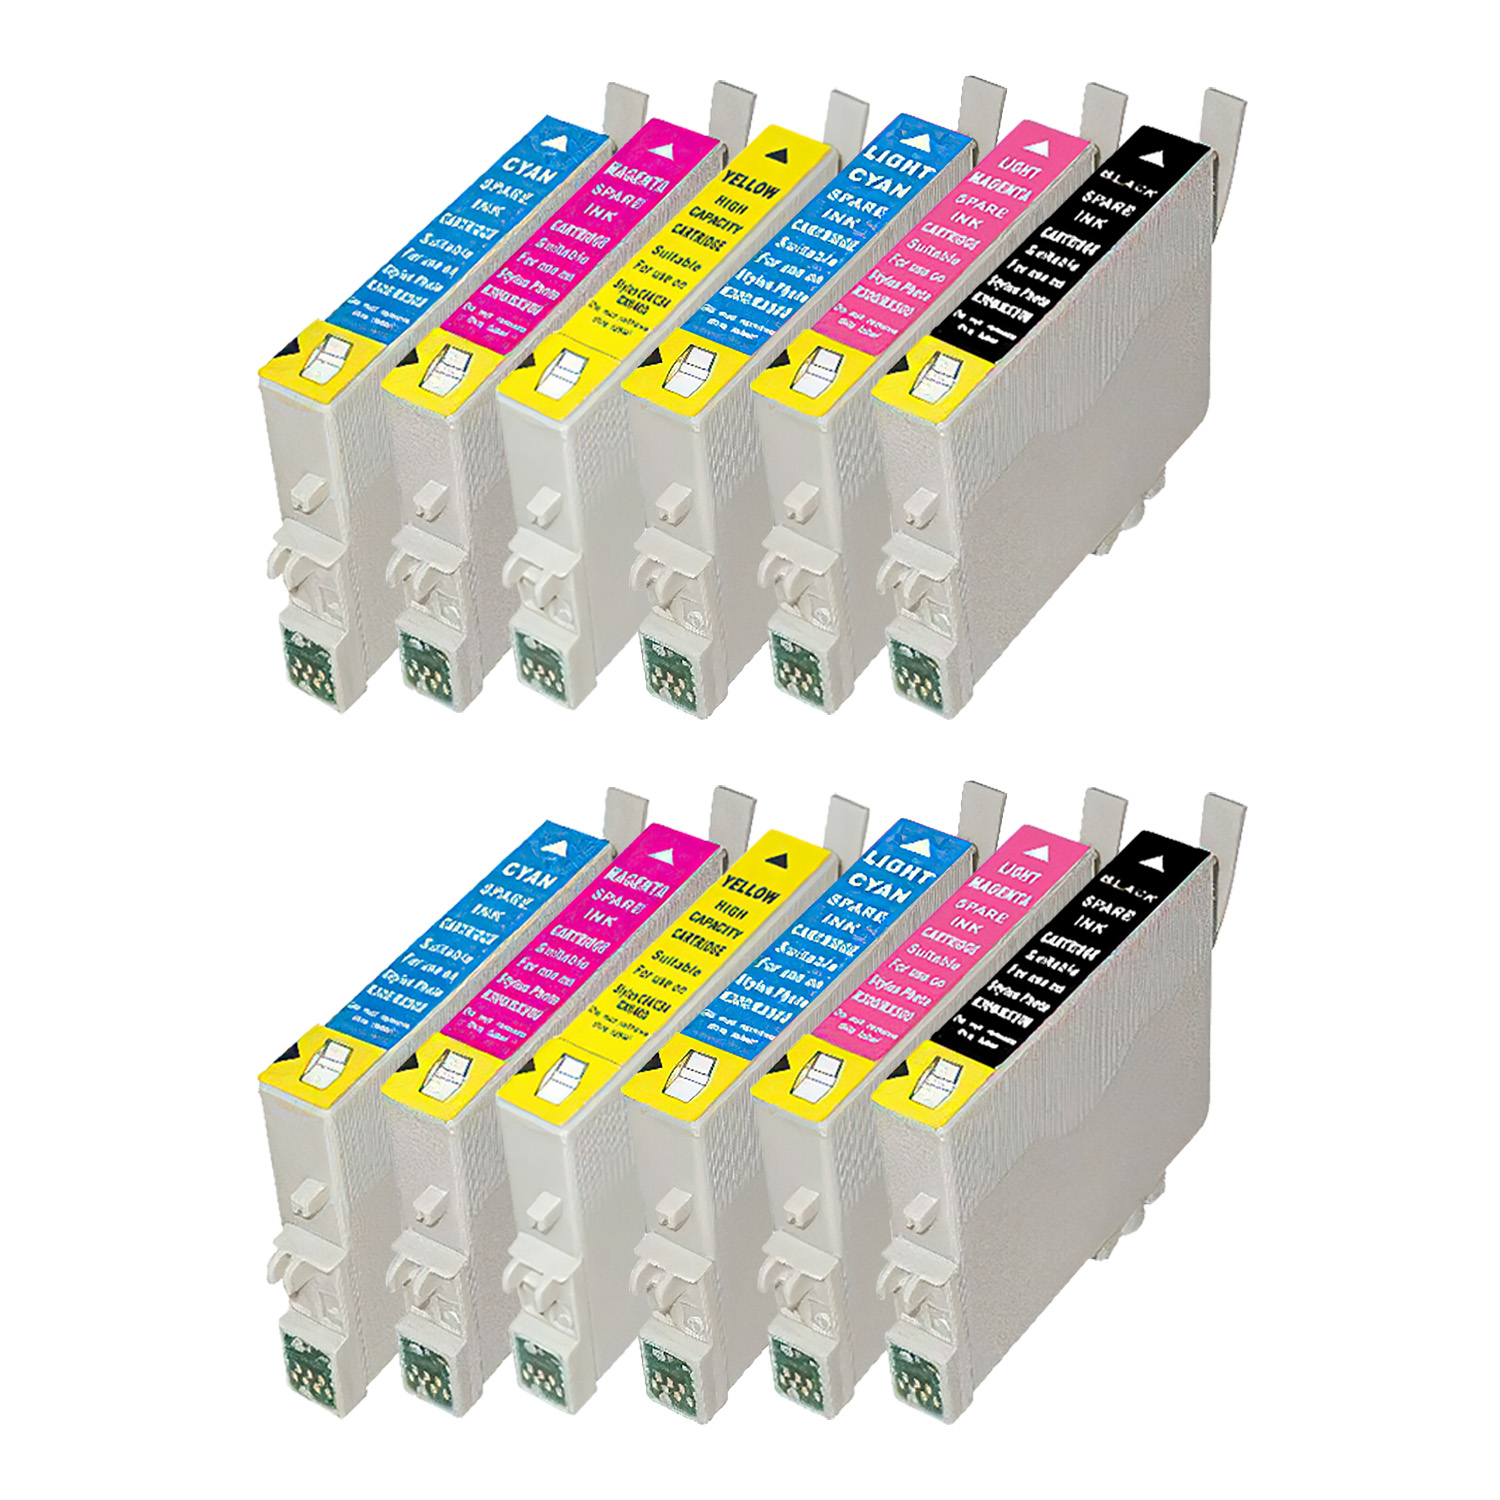 Remanufactured Epson 99-98 Inkjet High Capacity Pack - 12 Cartridges